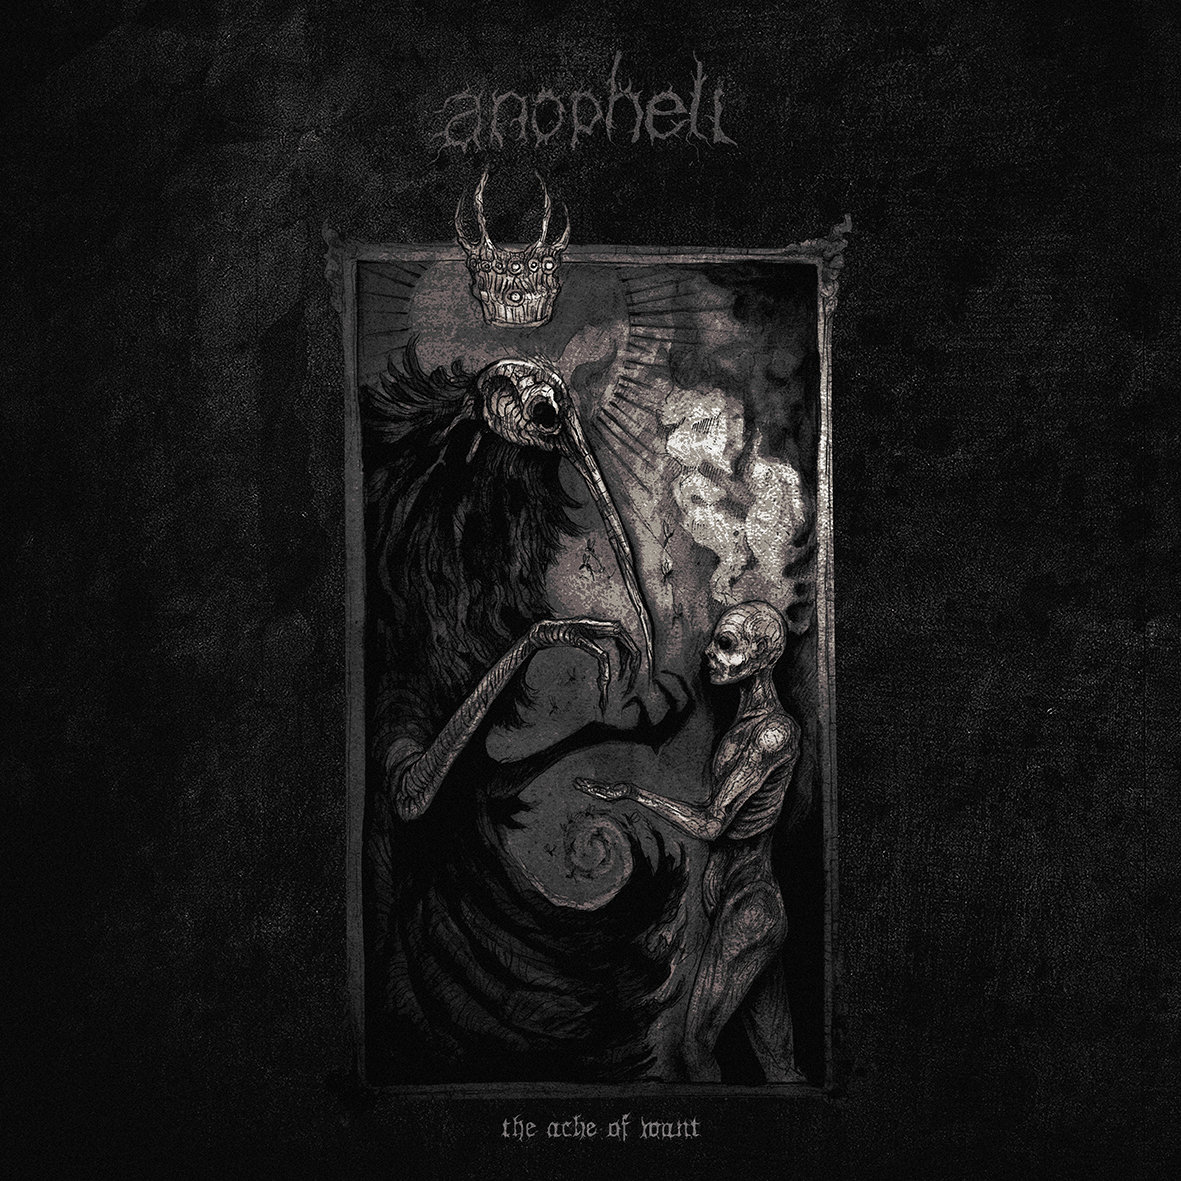 Anopheli - Somnambulant @ 'The Ache Of Want' album (metal, cello)